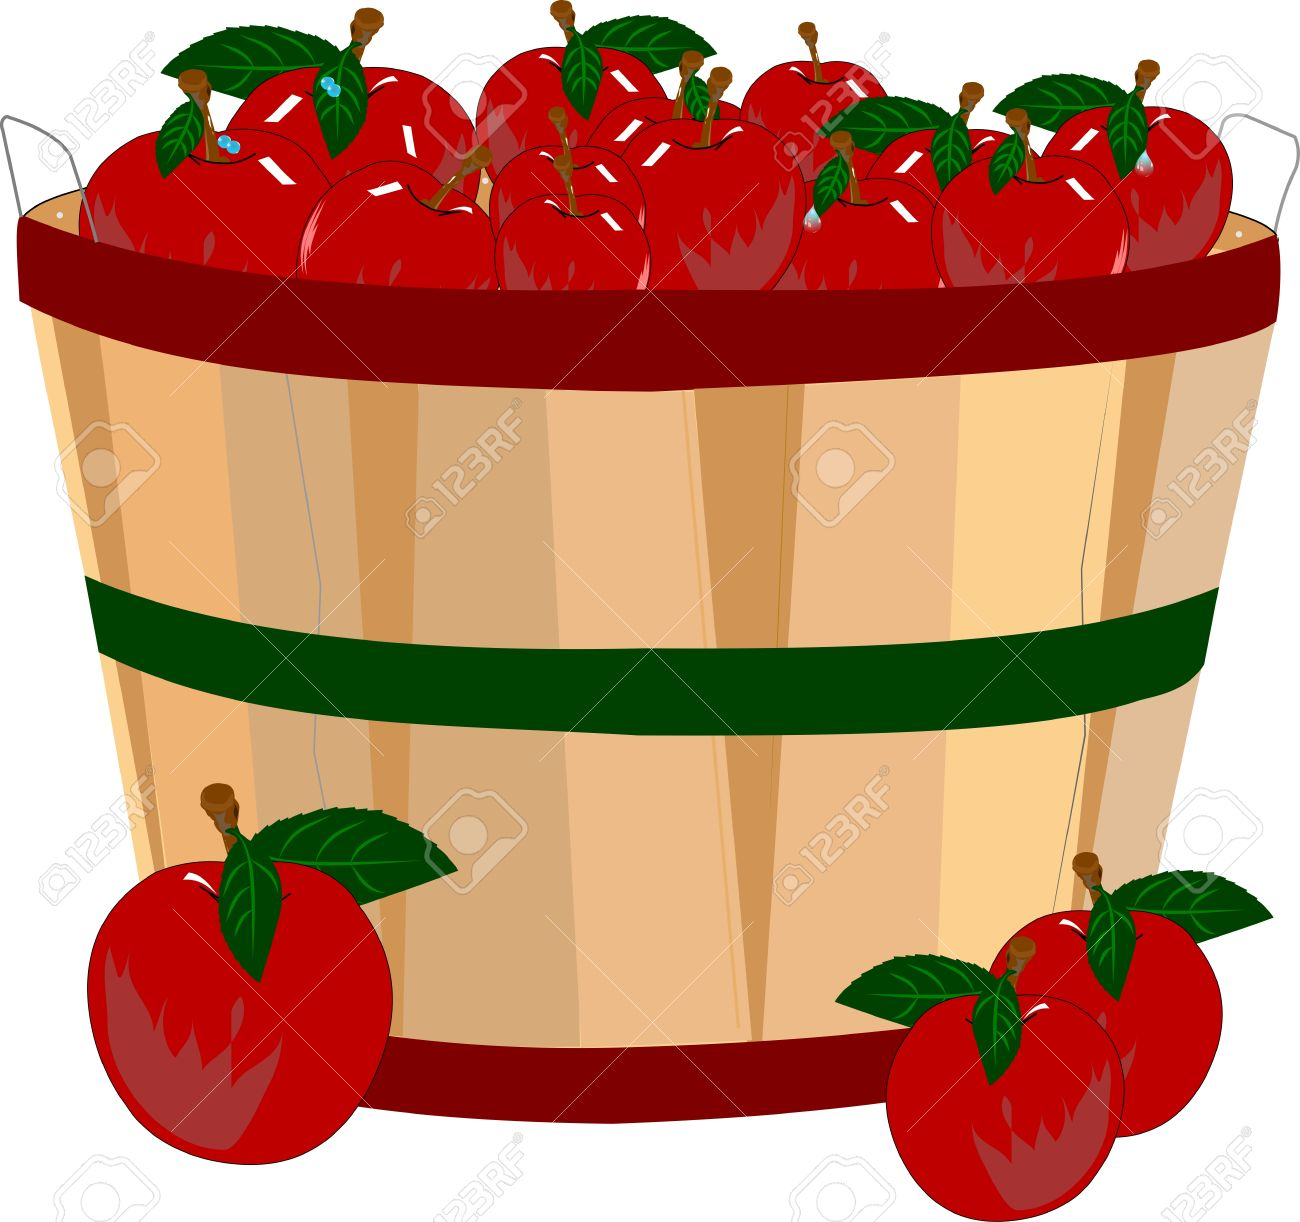 Clipart Of Apples In A Basket